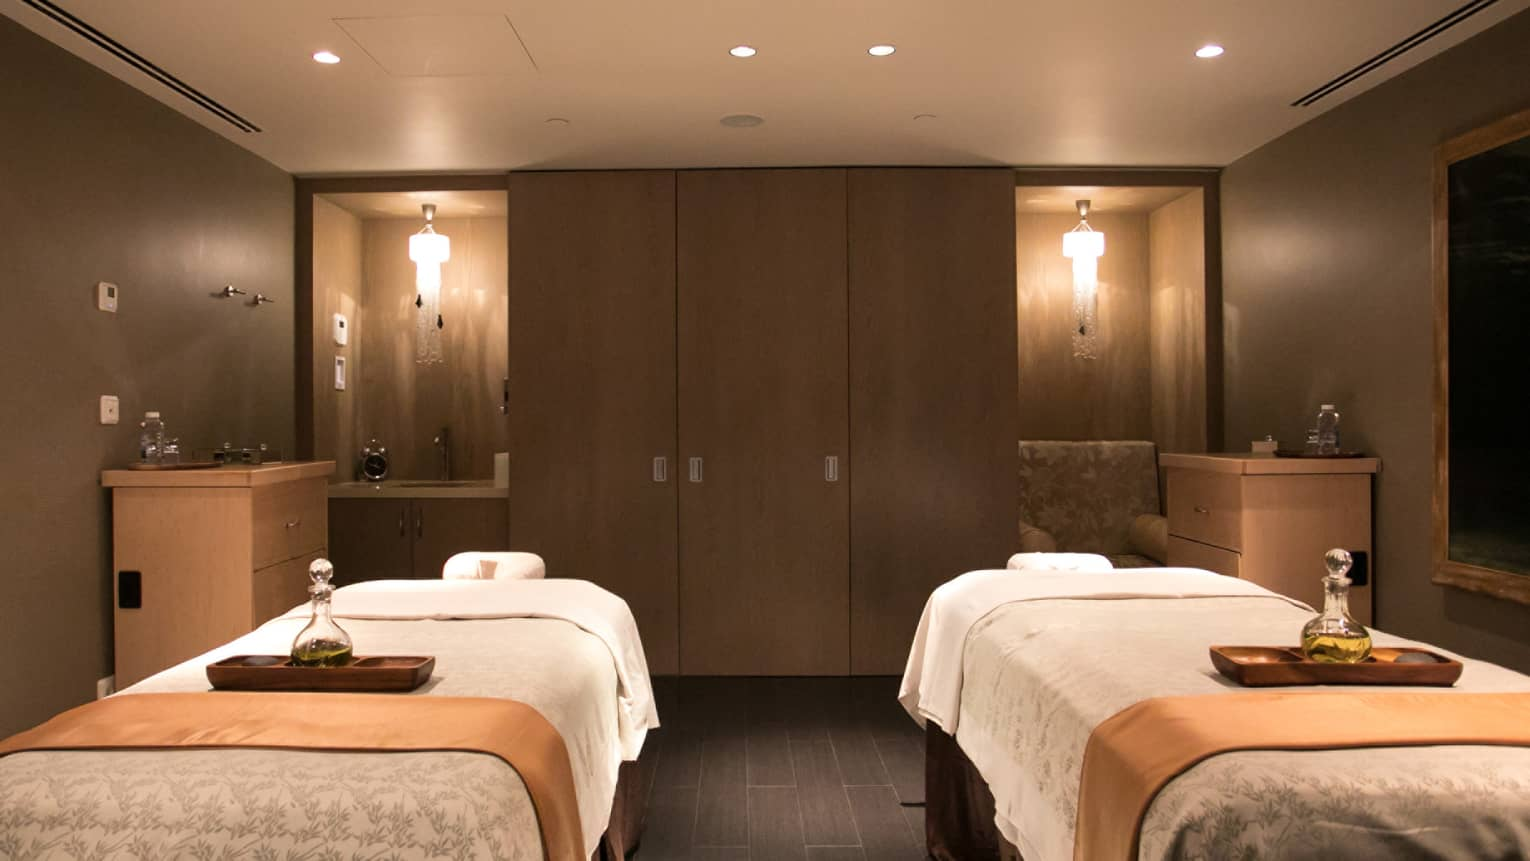 Two massage beds side-by-side in Luceo Spa couple suite with low lighting, wood cabinets